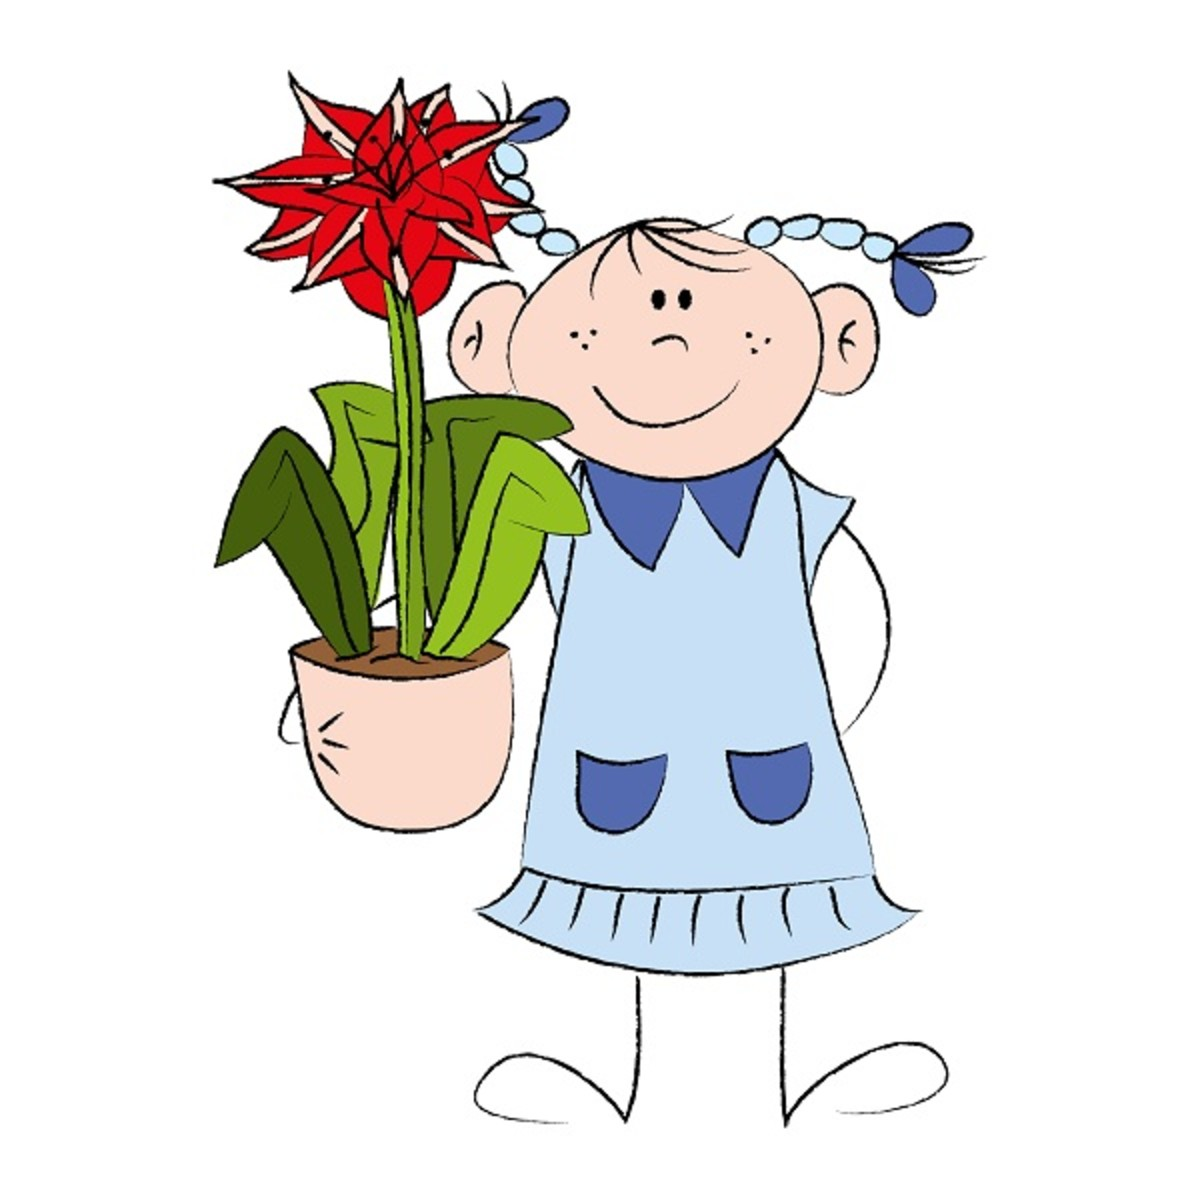 Girl with Flowering Amaryllis Bulb